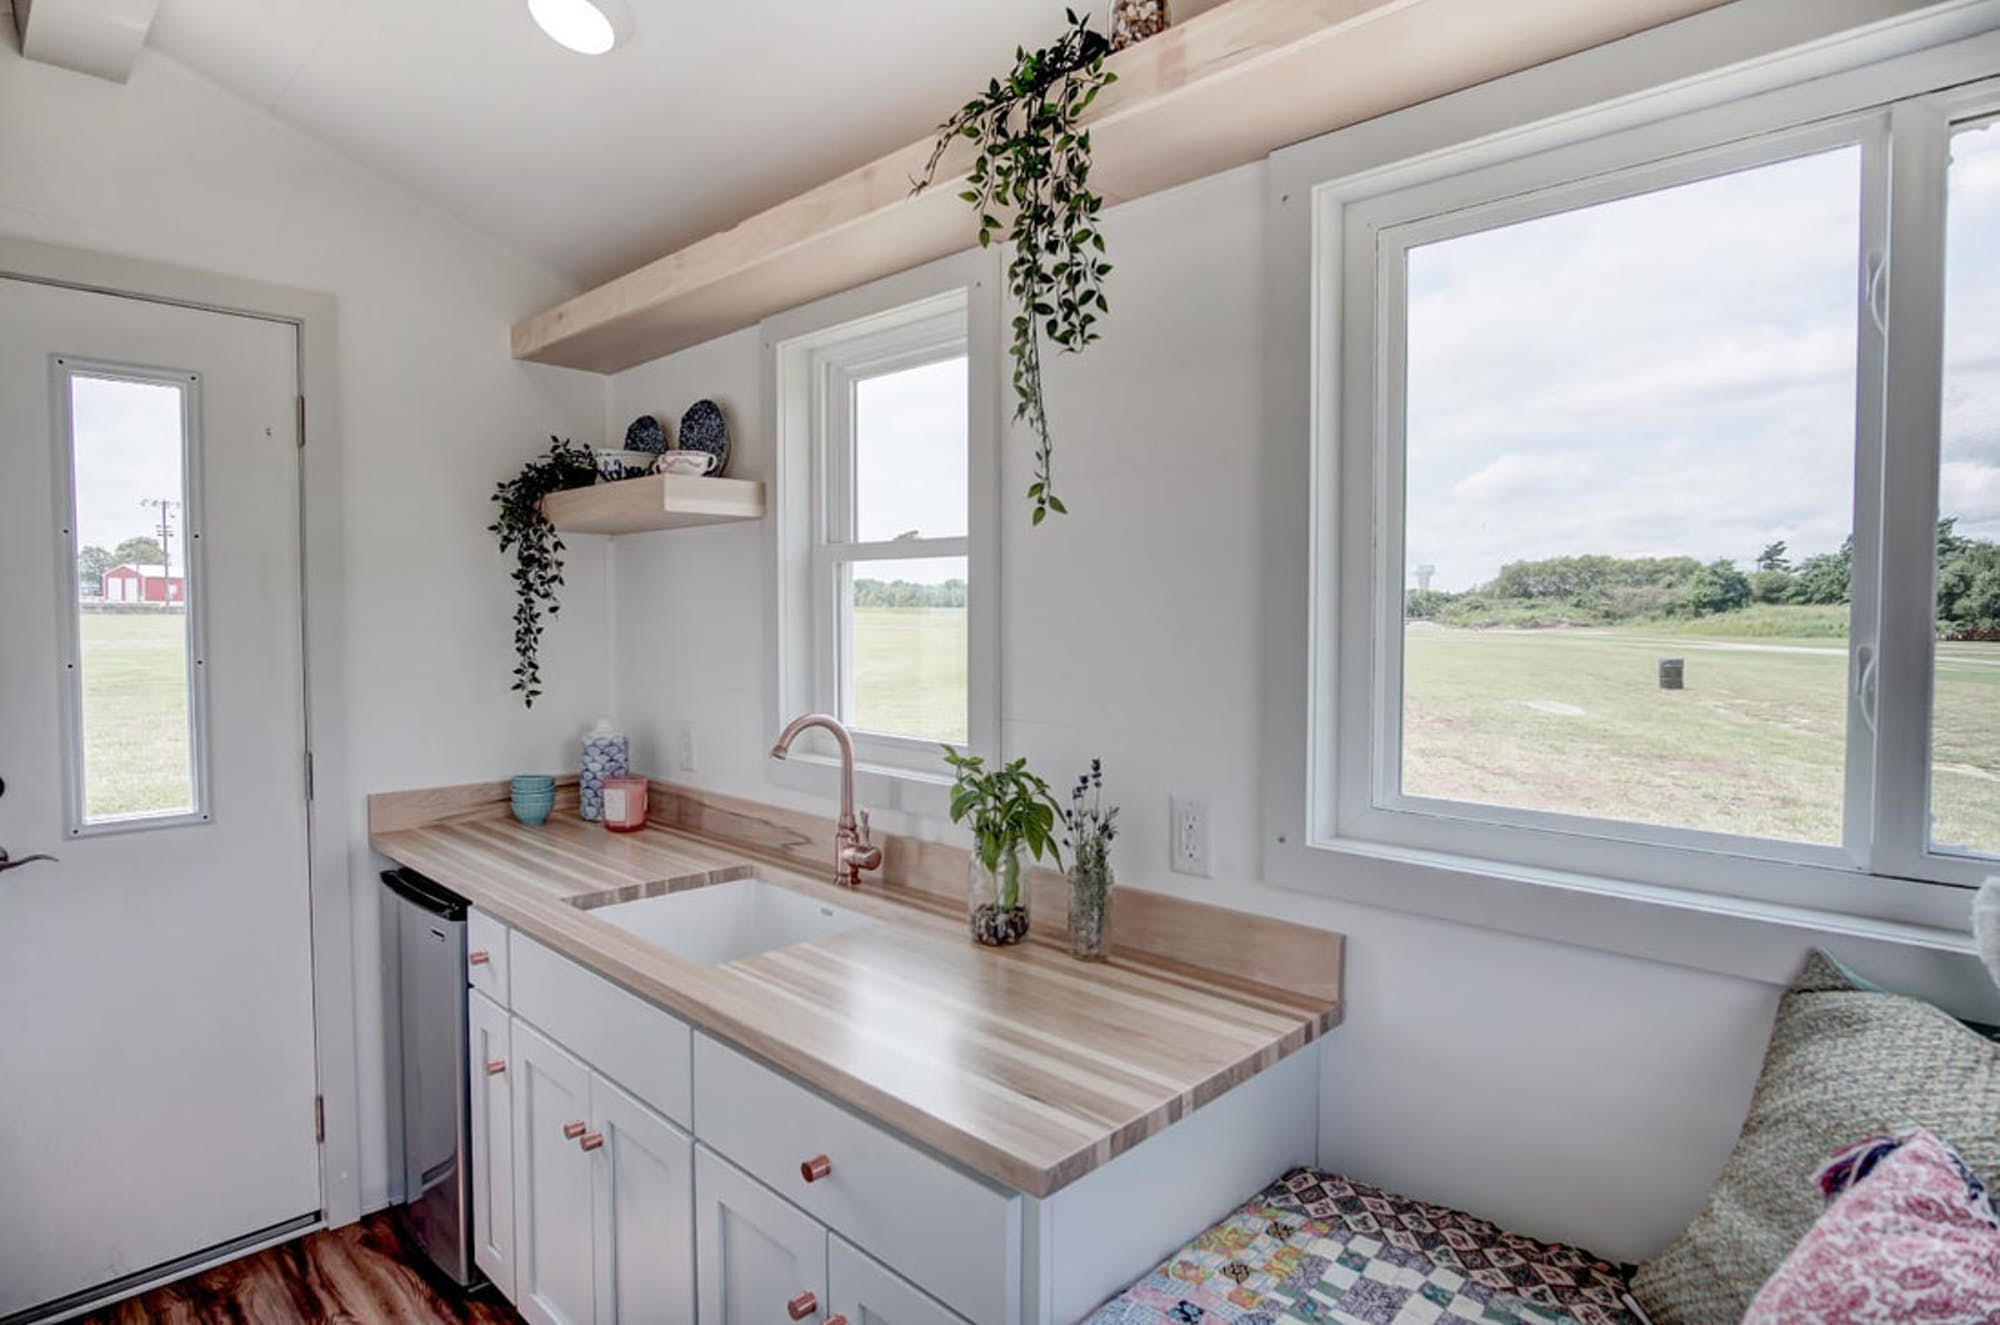 Tiny house packs all the essentials in 100 square feet 100 square foot house